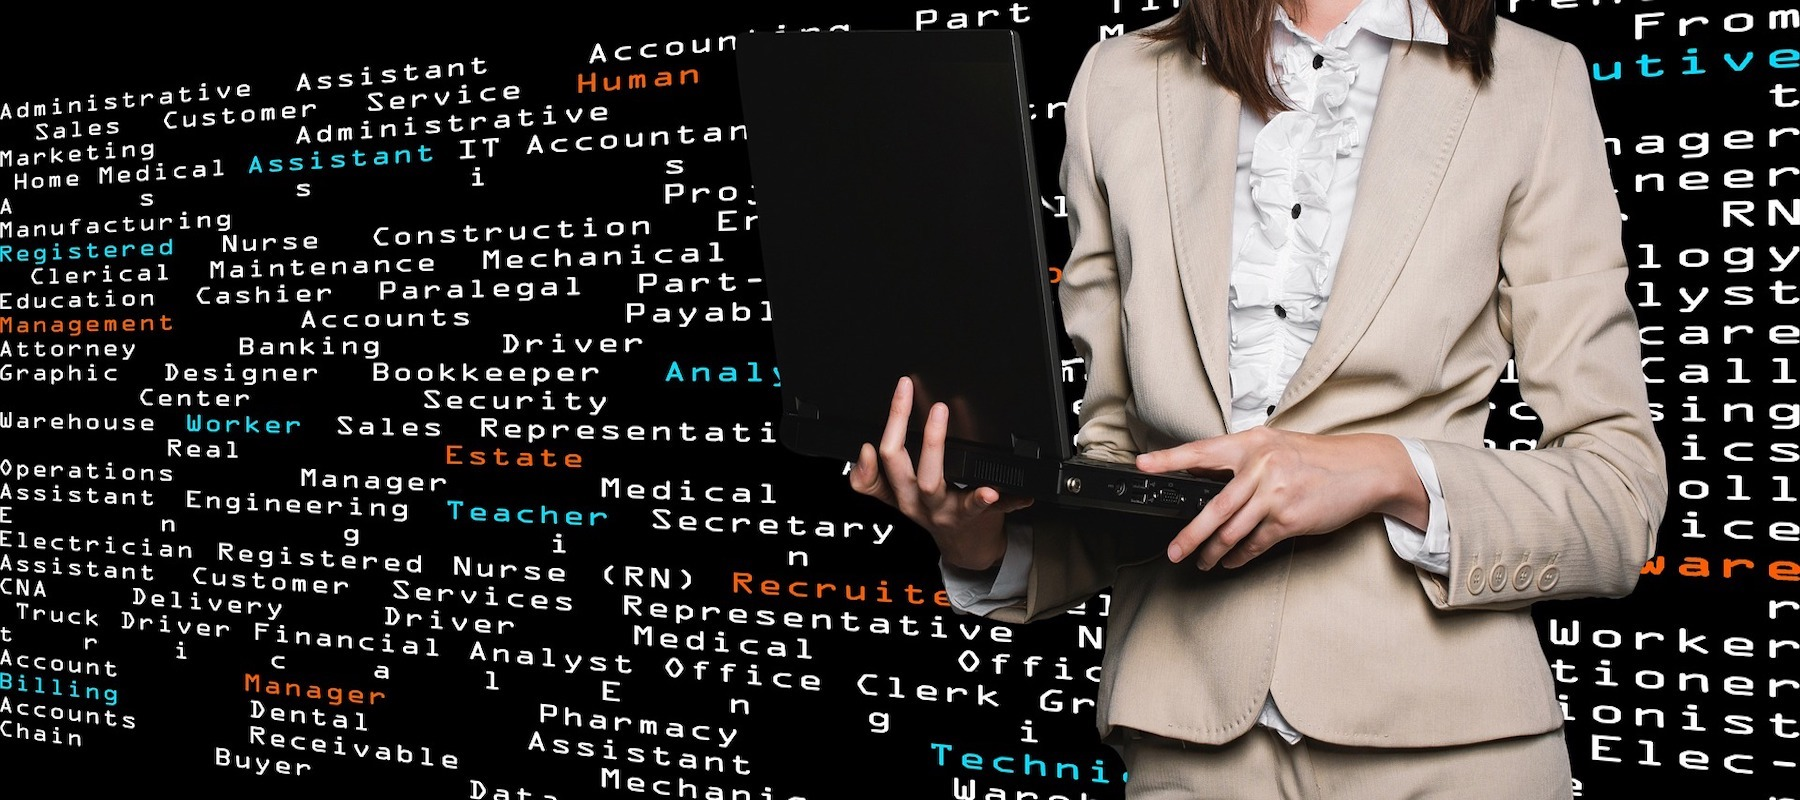 nyc professional resume writing services writers ny unc business school income tax Resume Professional Resume Writers Nyc